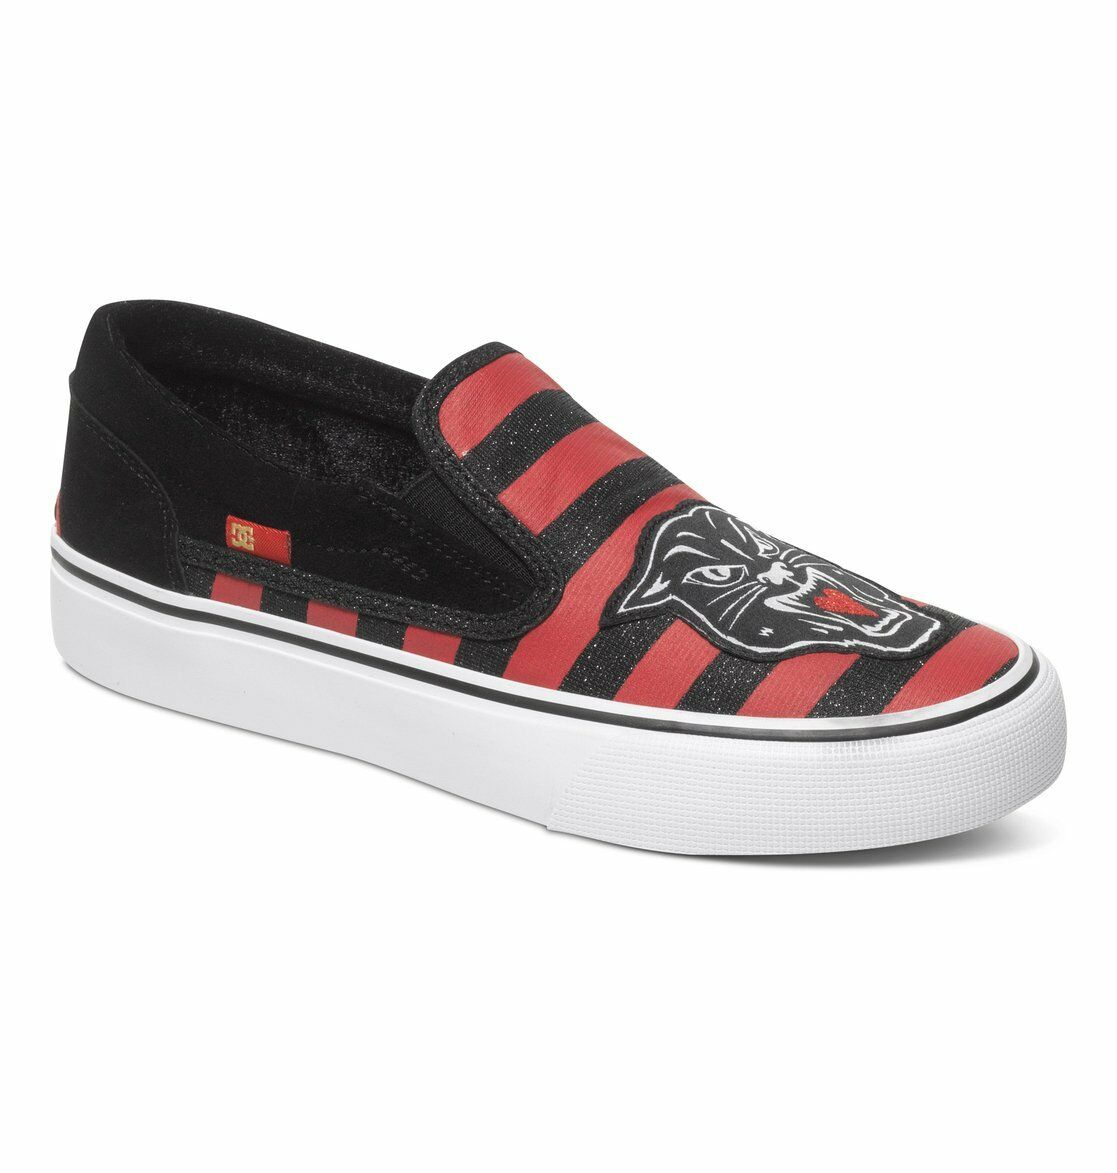 SLIP ON DC TRASE DC ON TAYLOR REEVE 357952